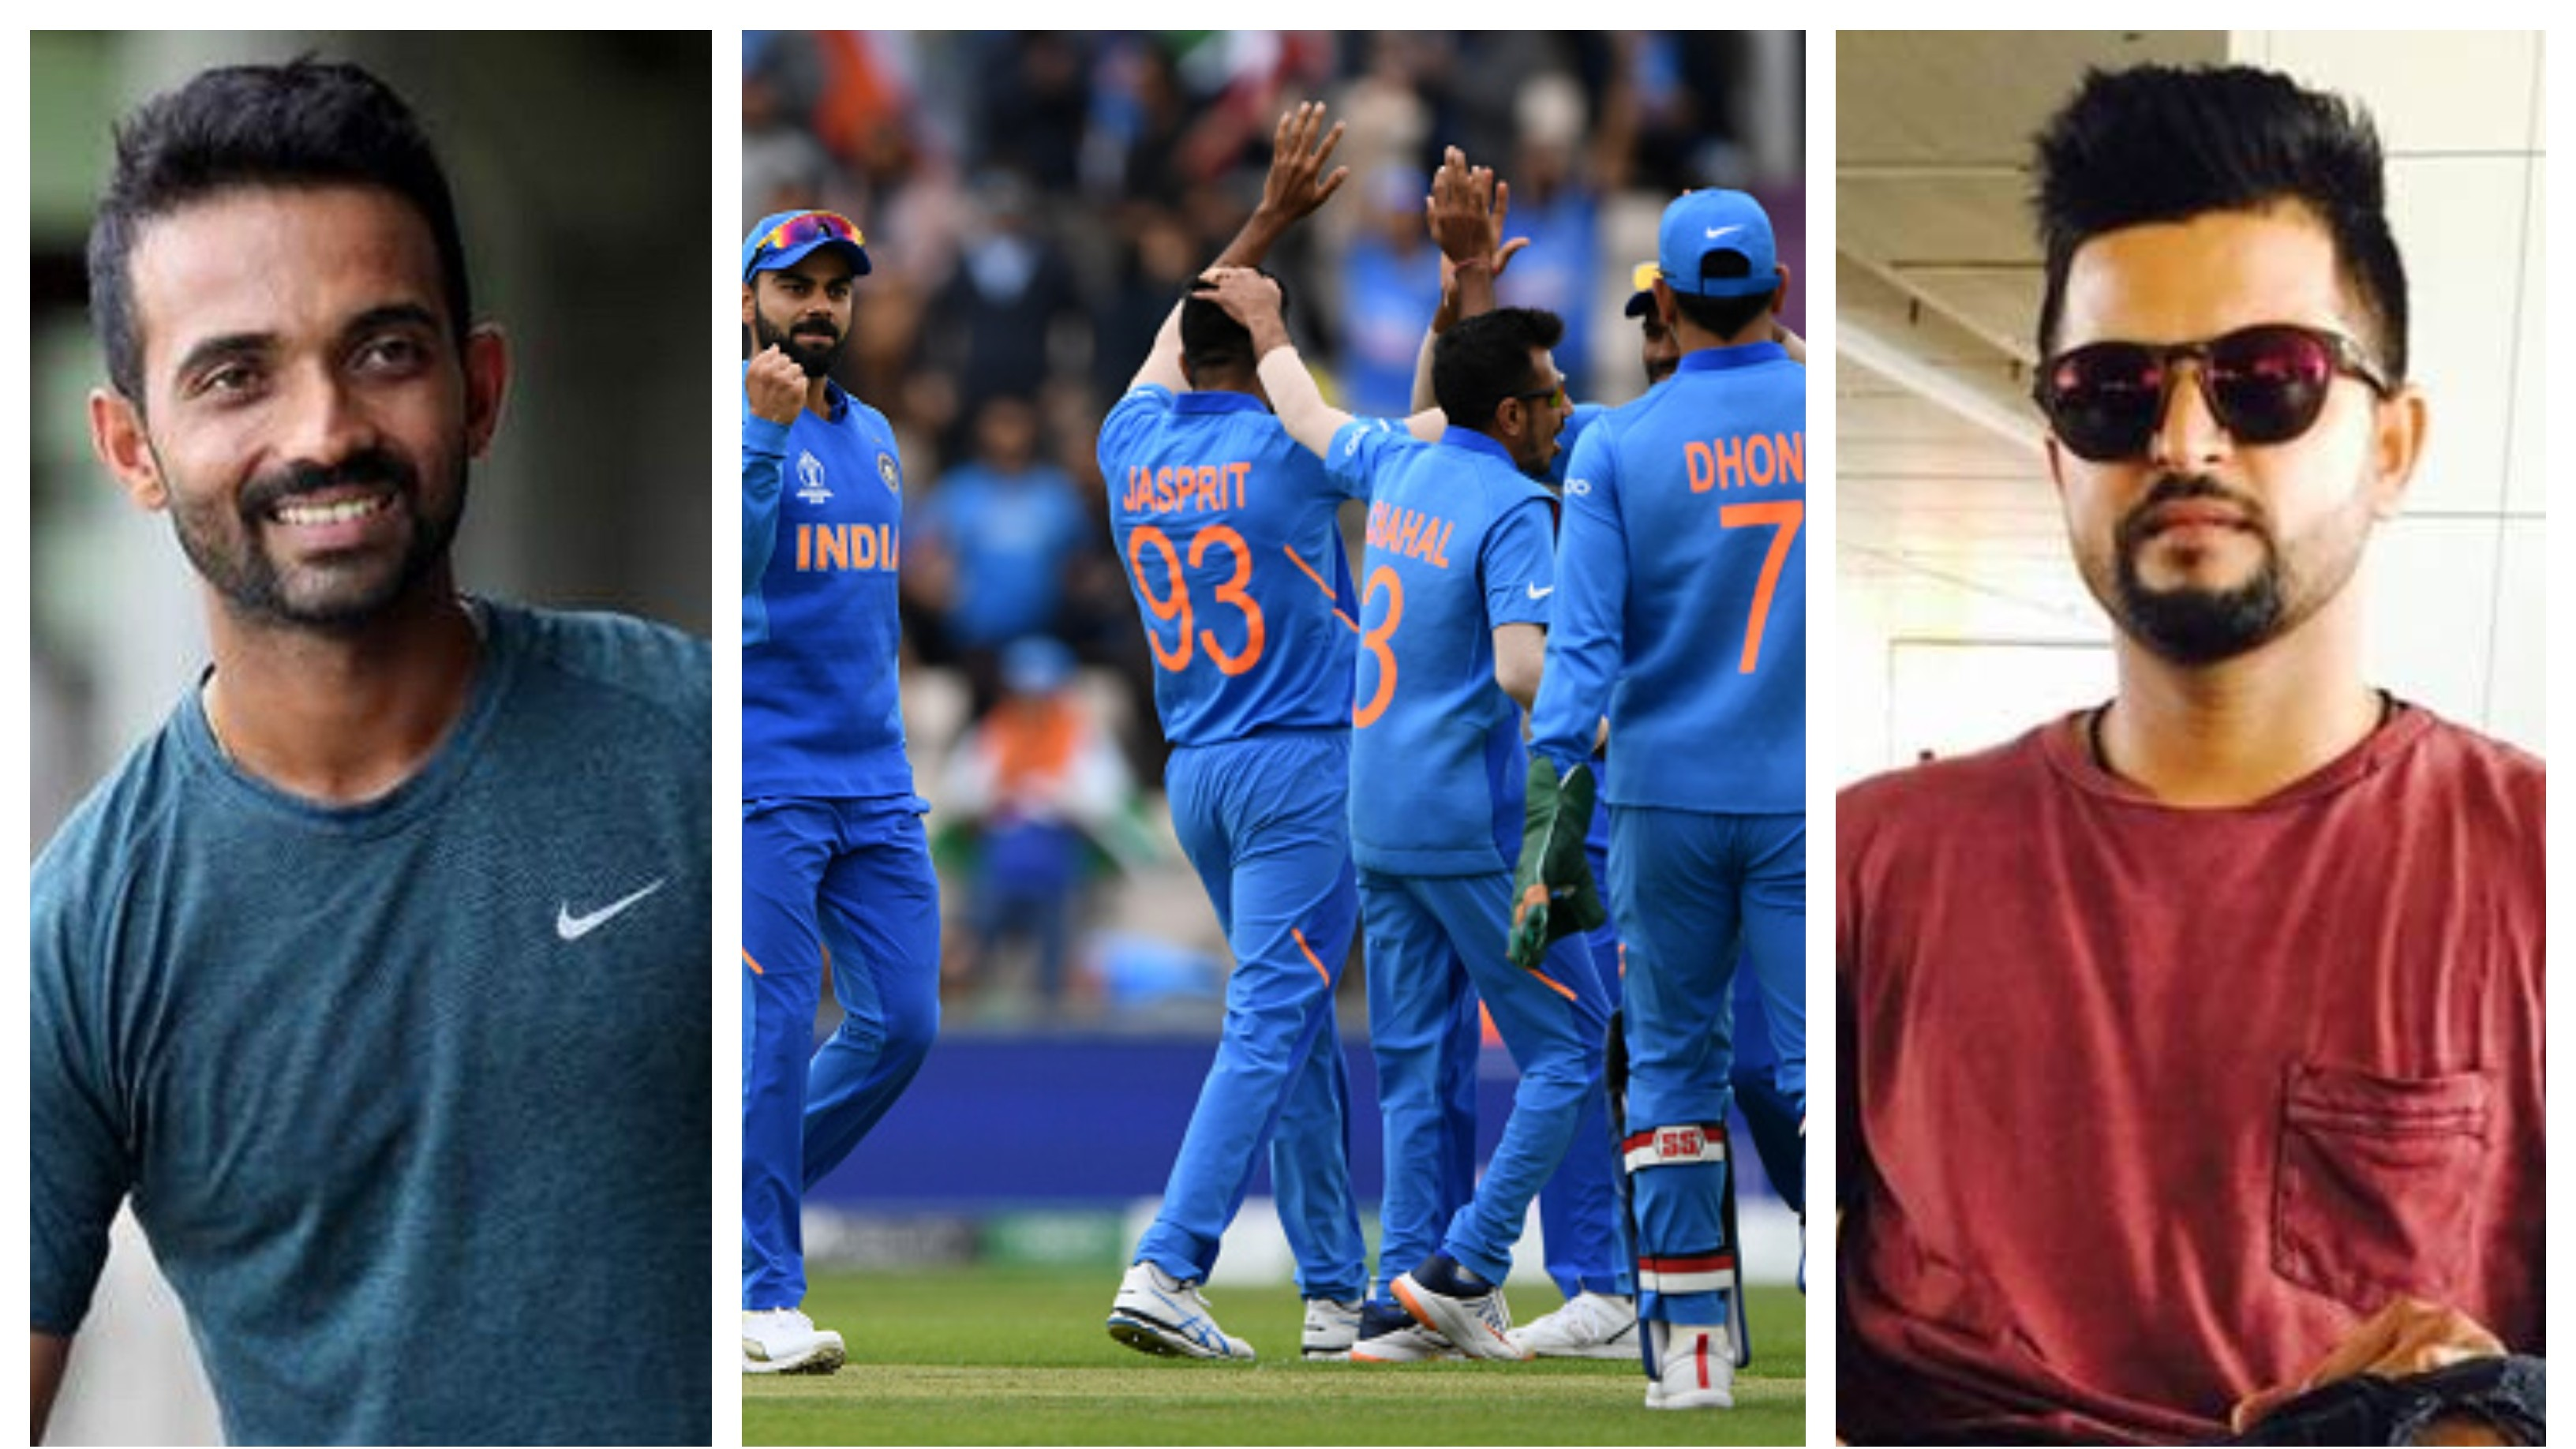 CWC 2019: Indian cricket fraternity wishes Team India well before World Cup opener versus SA